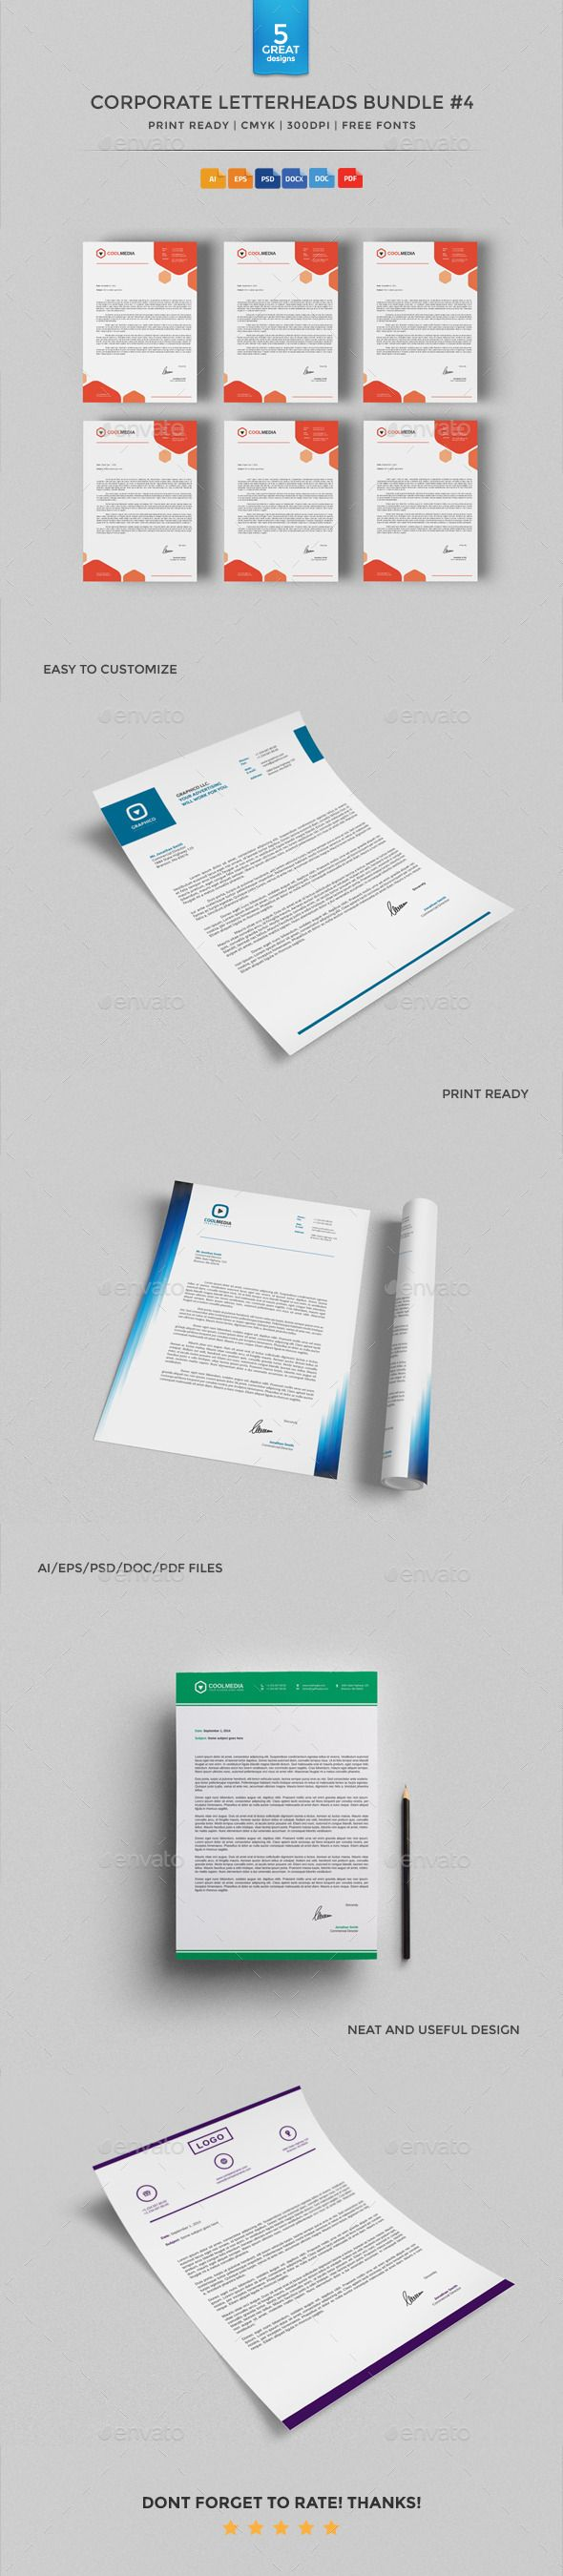 245 best Business cards, Letterheads and other Stationery images on ...